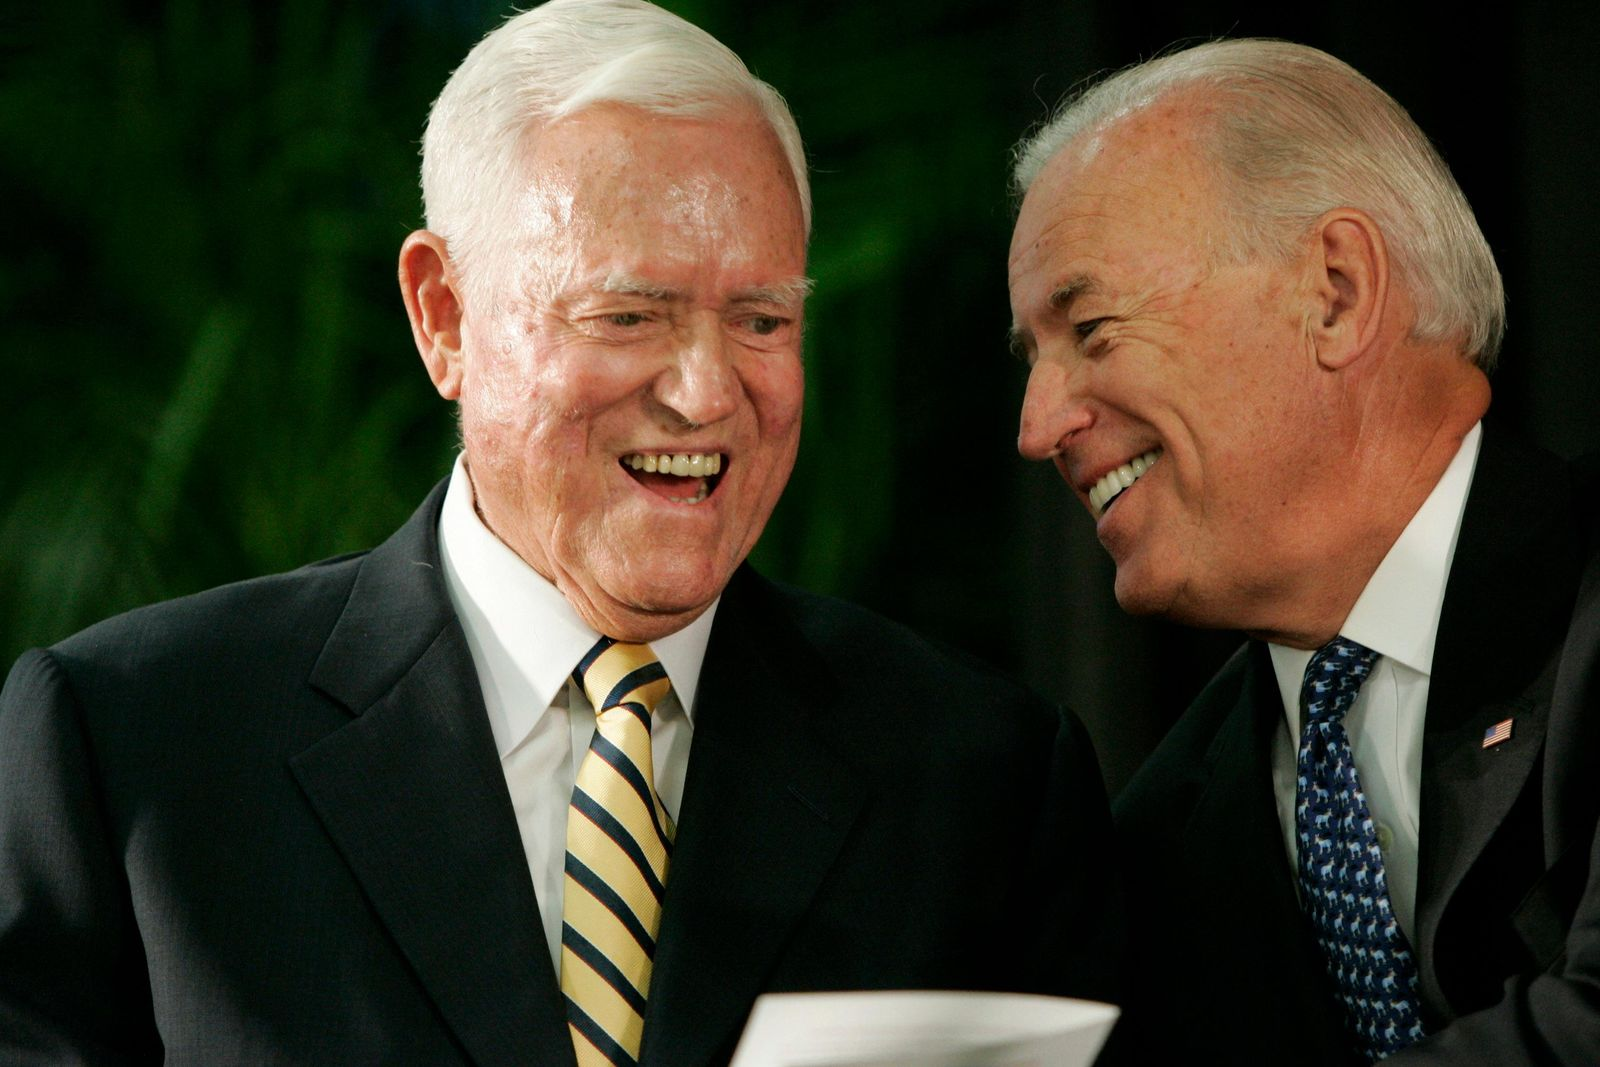 FILE - In this Friday, July 23, 2010, file photo, Vice President Joe Biden chats with former U.S. Sen. Ernest Fritz Hollings during the dedication ceremony of the new Ernest F. Hollings Special Collections Library in Columbia, S.C.{ } (AP Photo/Mary Ann Chastain, File)